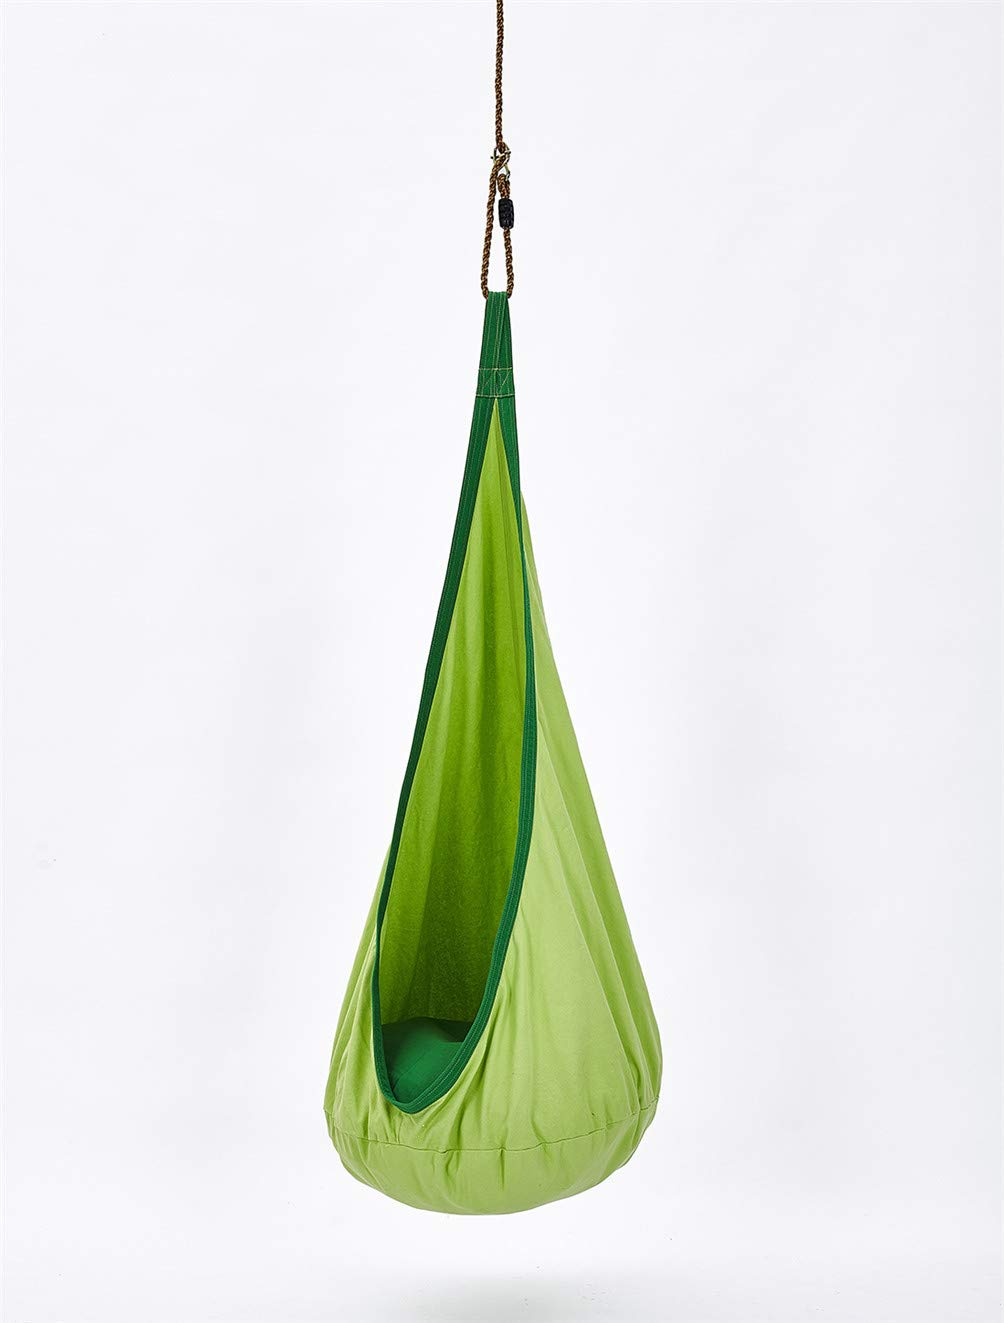 LMX-liv Kids Pod Swing Seat - Cotton Hanging Nest for Kids - Children Pod Hanging Chair for Nursery Or Children's Room - Hammock Pod Kids Swing - Portable Child Inflatable Cloth Bag Swing Tent,Green  INFANT CEILING CLOTH BAG - The material of the seat cushion 100% cotton and PVC inflatable cushion, pleasant skin feel, easy to clean, An inflatable and removable cushion with adjustable hardness, The color is bright and energetic. INDOOR AND OUTDOOR - It can be used in outdoor or indoor and can easily be hung from a branch, porch or ceiling, brightens the room or garden immediately. The offers hours of swinging and spinning fun. CHILD NEEDS - You can sit and read with your children, listen to music, or just relax. It helps your children to develop the skills of balance and body awareness. Perfect for children who acquire sensory needs. 2